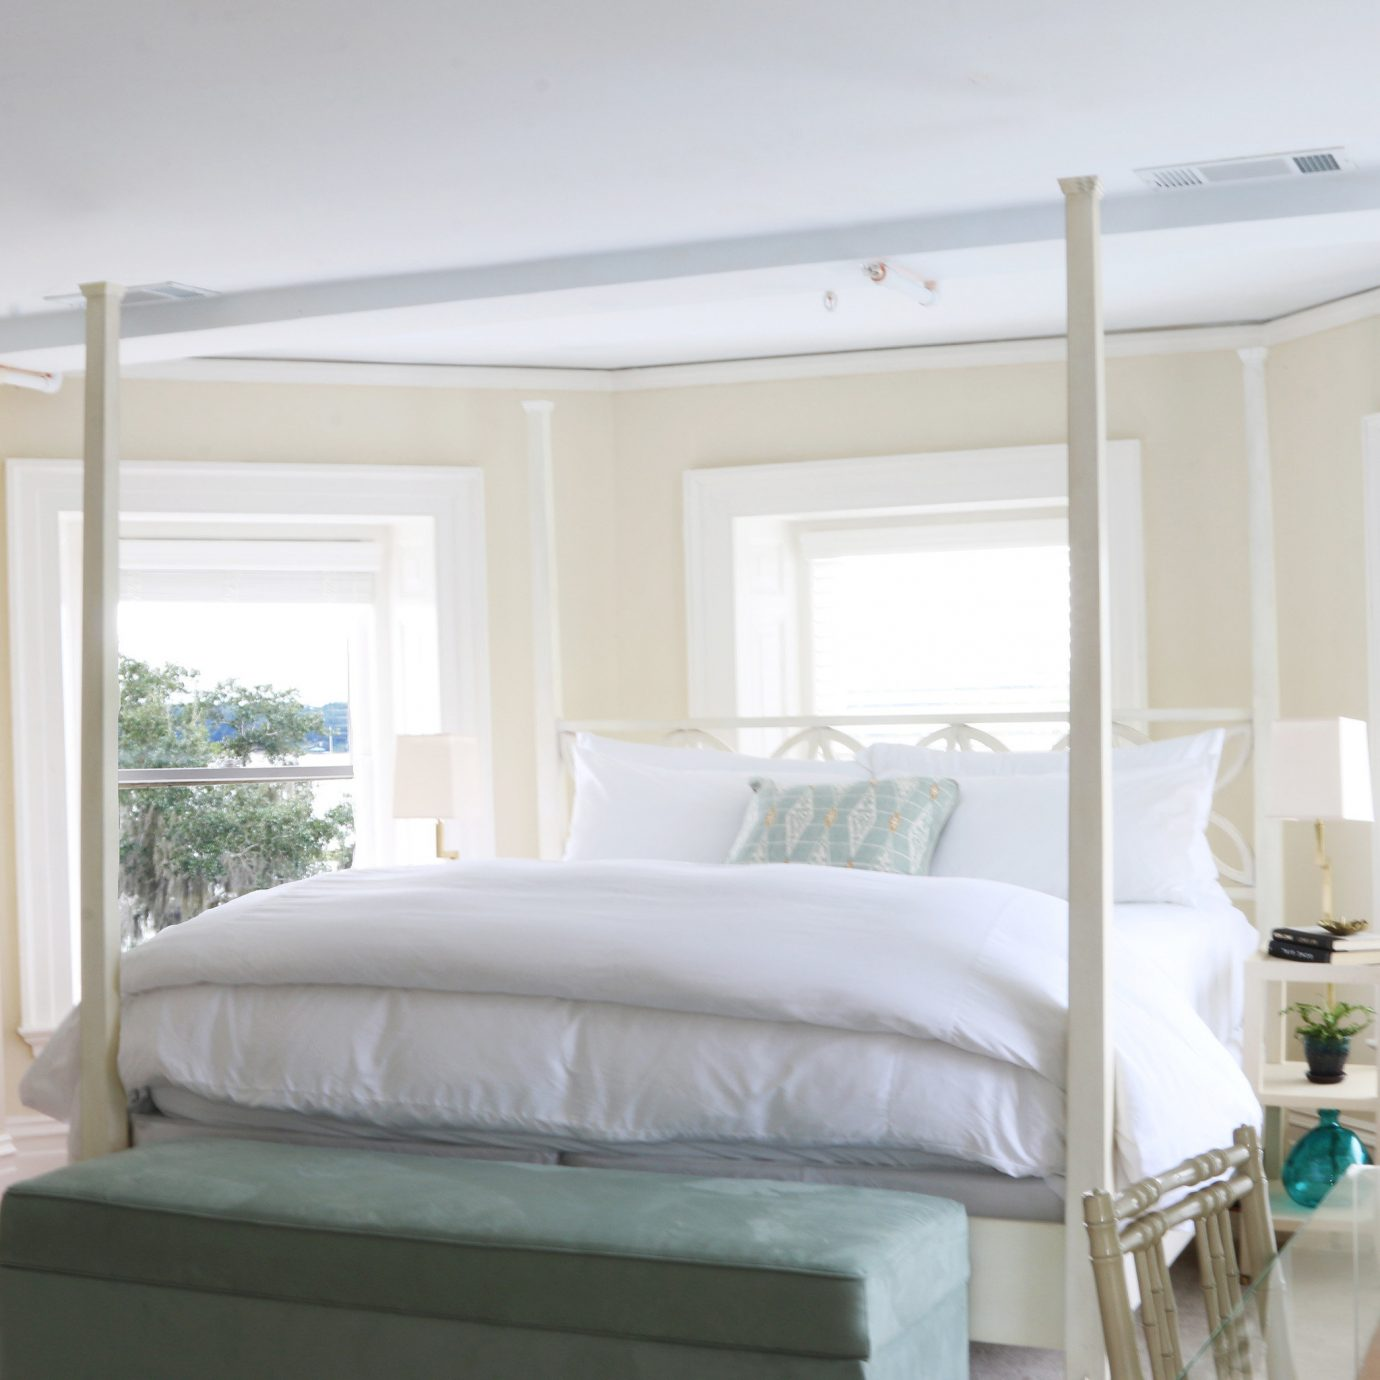 bed frame home Bedroom window treatment bedding mattress four poster bed sheet house living room curtain